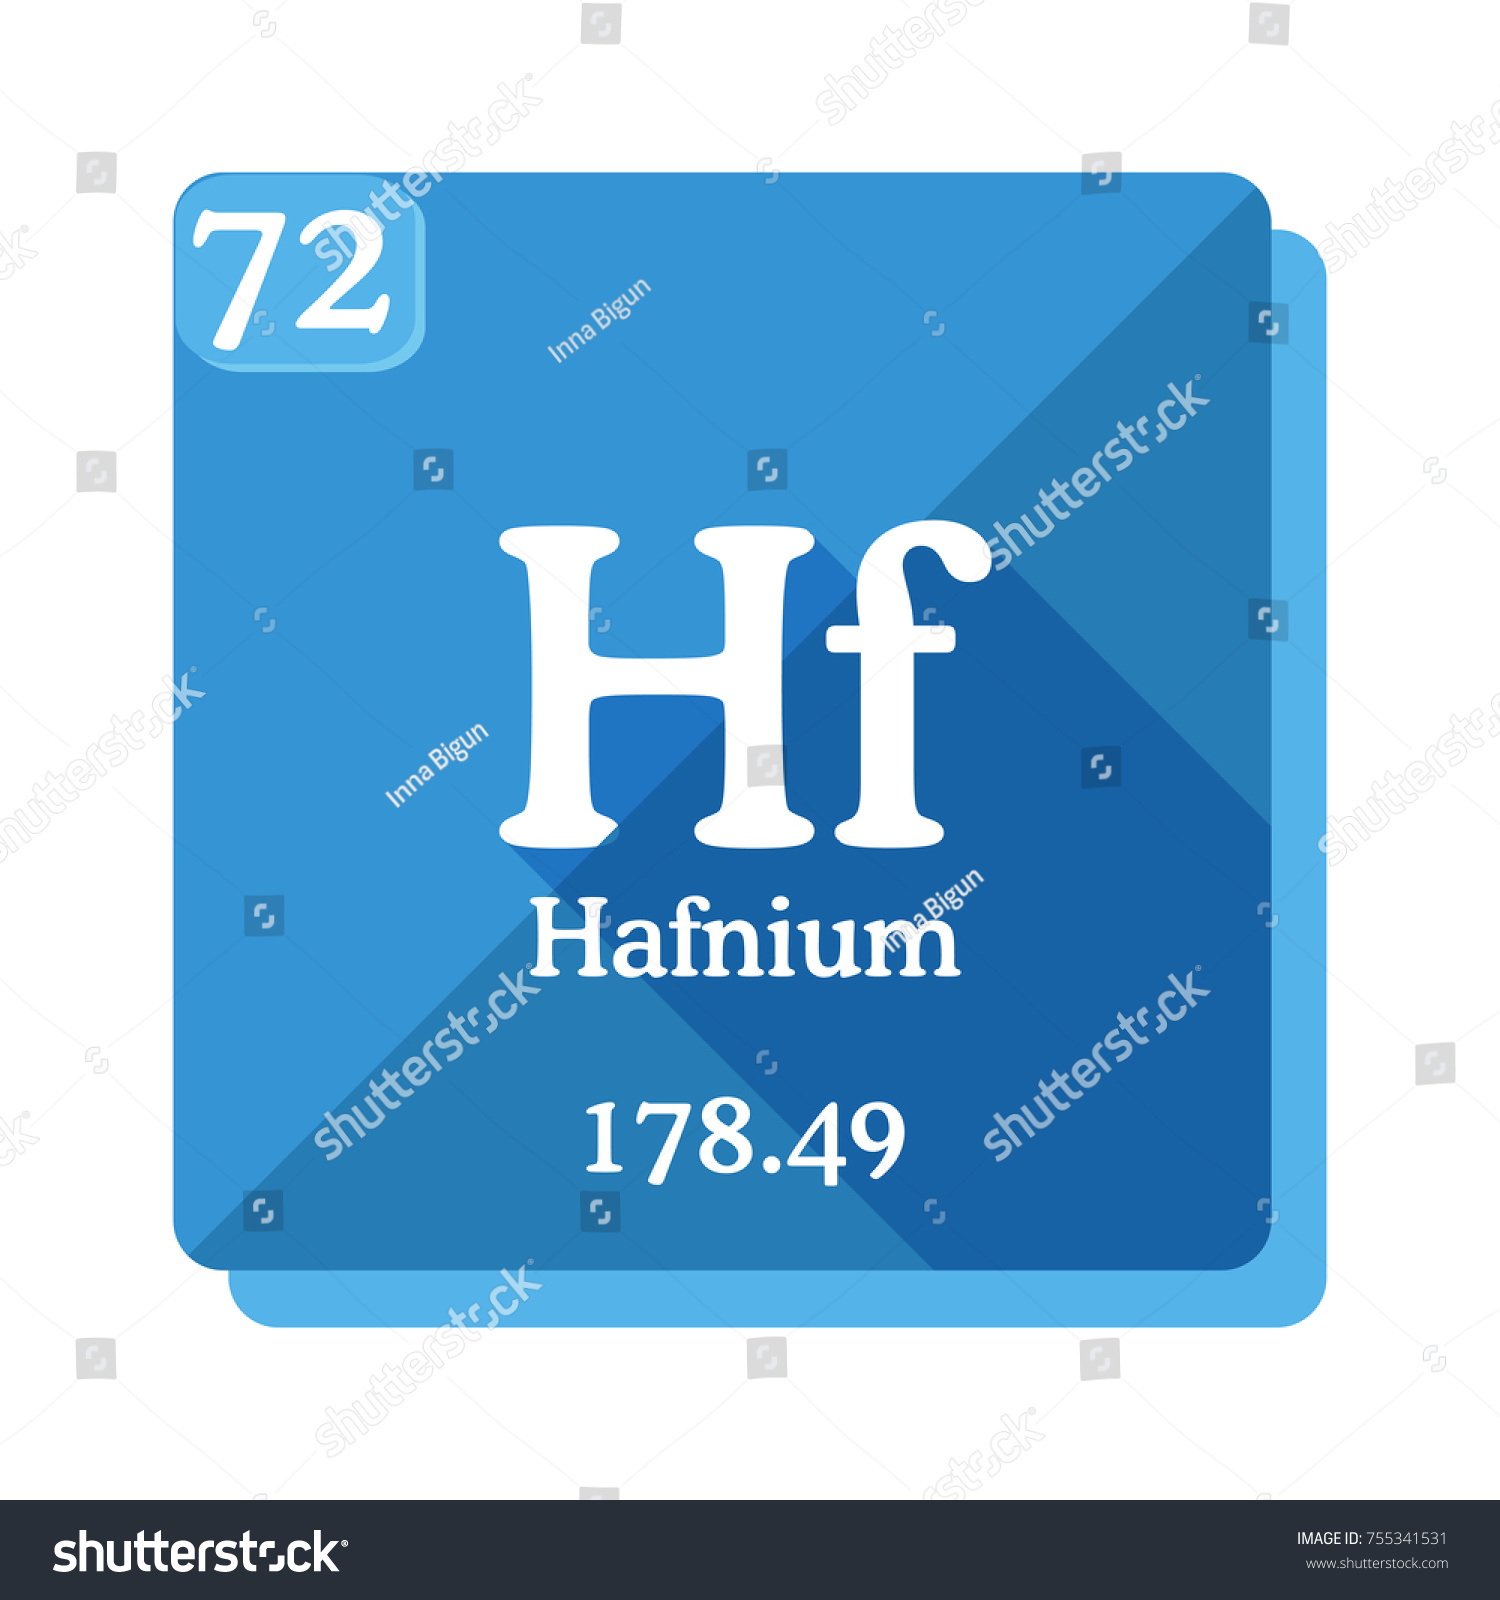 Hf element periodic table image collections periodic table images hafnium hf element periodic table vector stock vector 755341531 hafnium hf element of the periodic table gamestrikefo Images